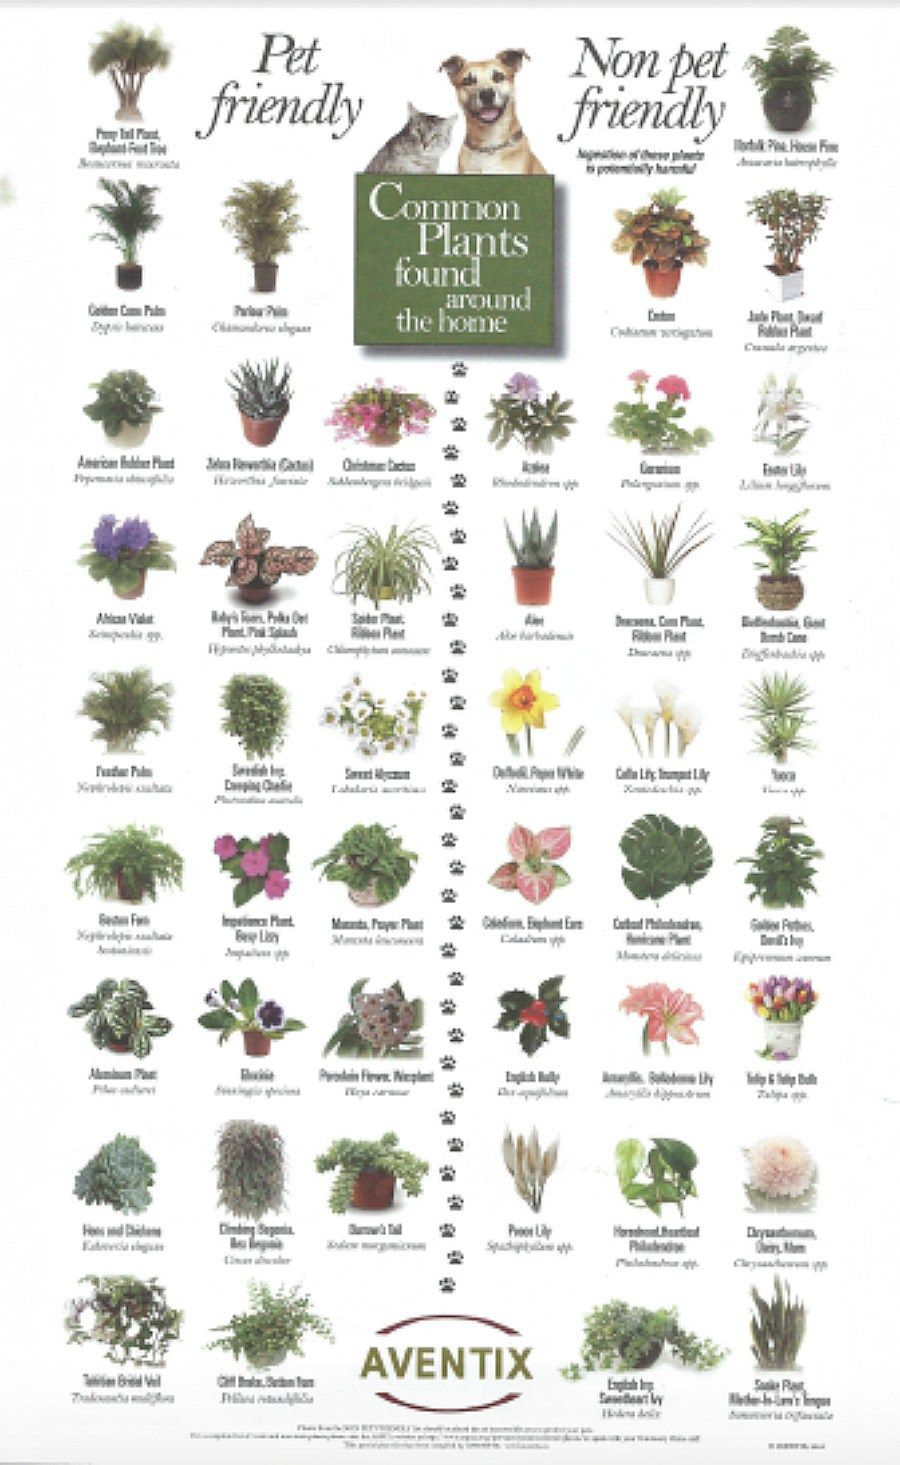 Pet-friendly plants and Toxic plants to pets | Gardening | Pinterest ...